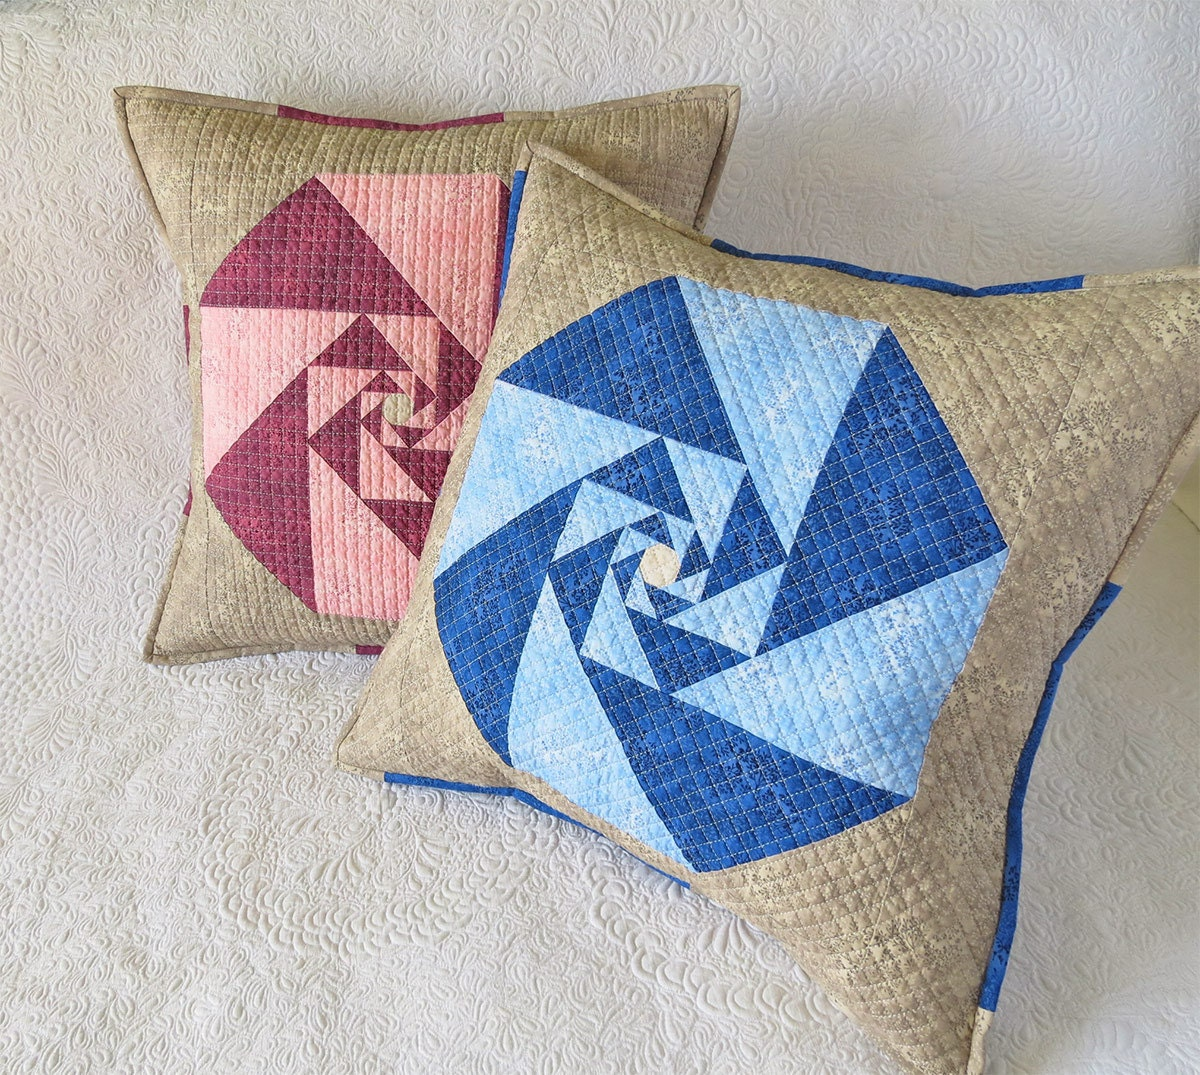 Quilted Decorative Pillow Covers : Decorative Quilted Pillows Covers-original geometric patchwork